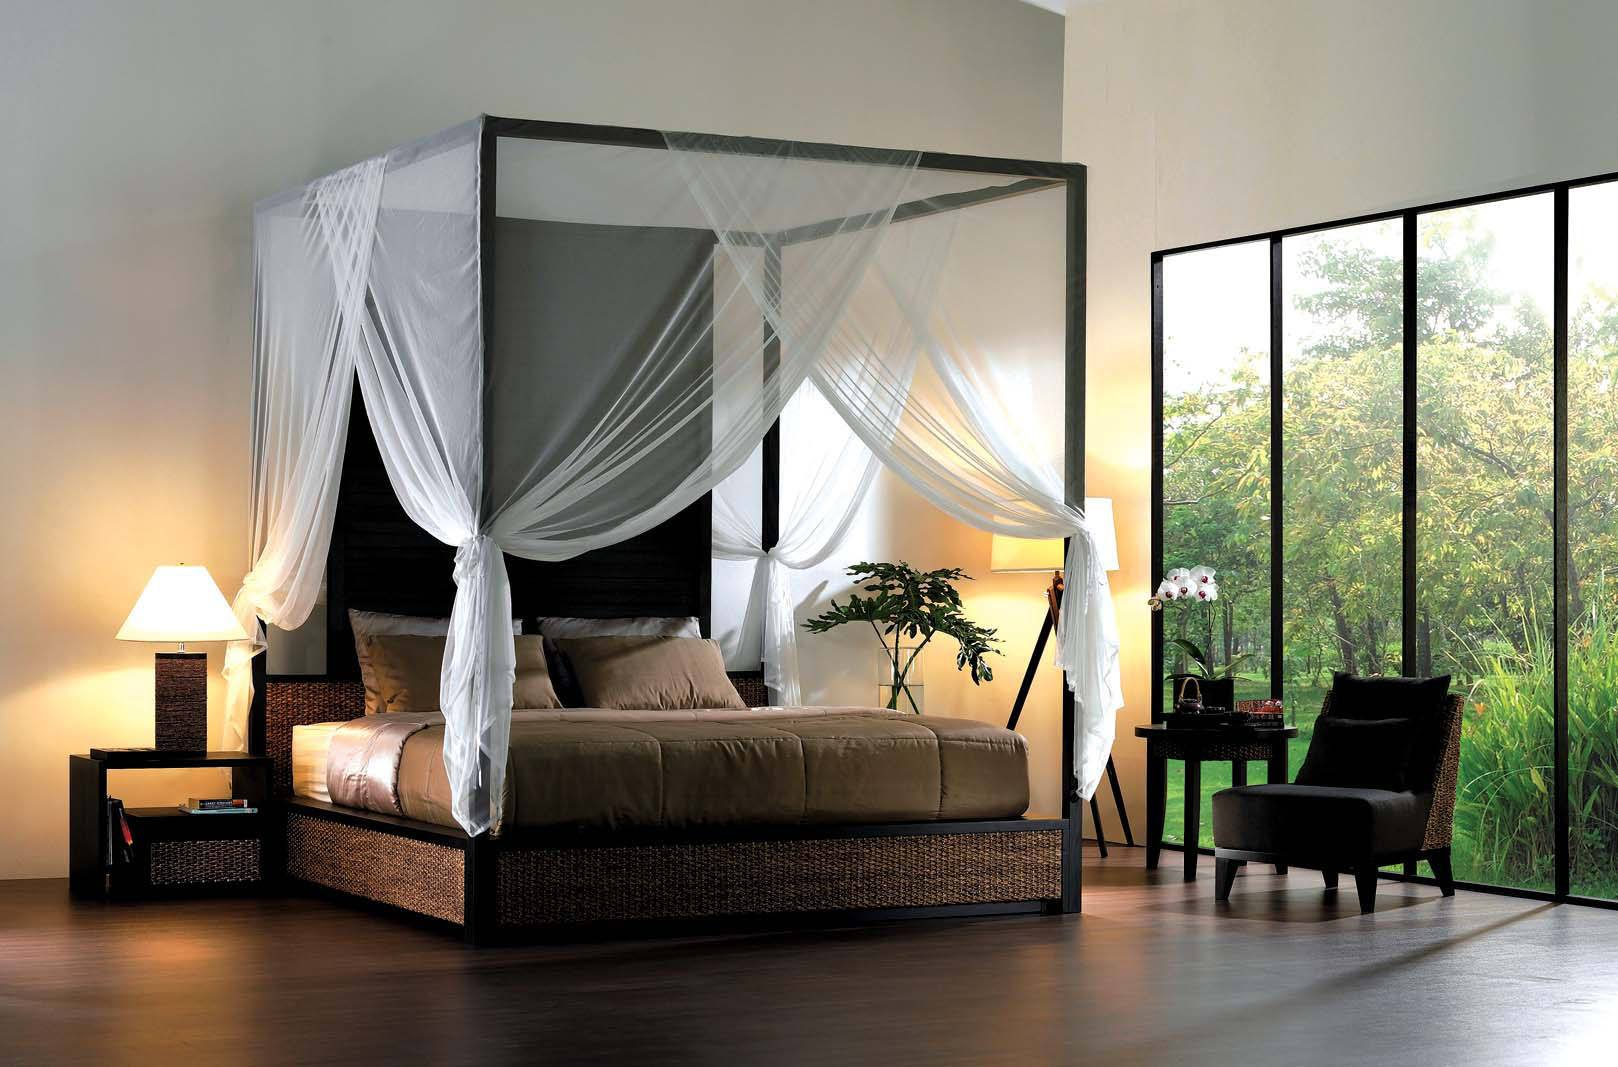 Four poster black bed with beige bedding and white voile canopy over the bed